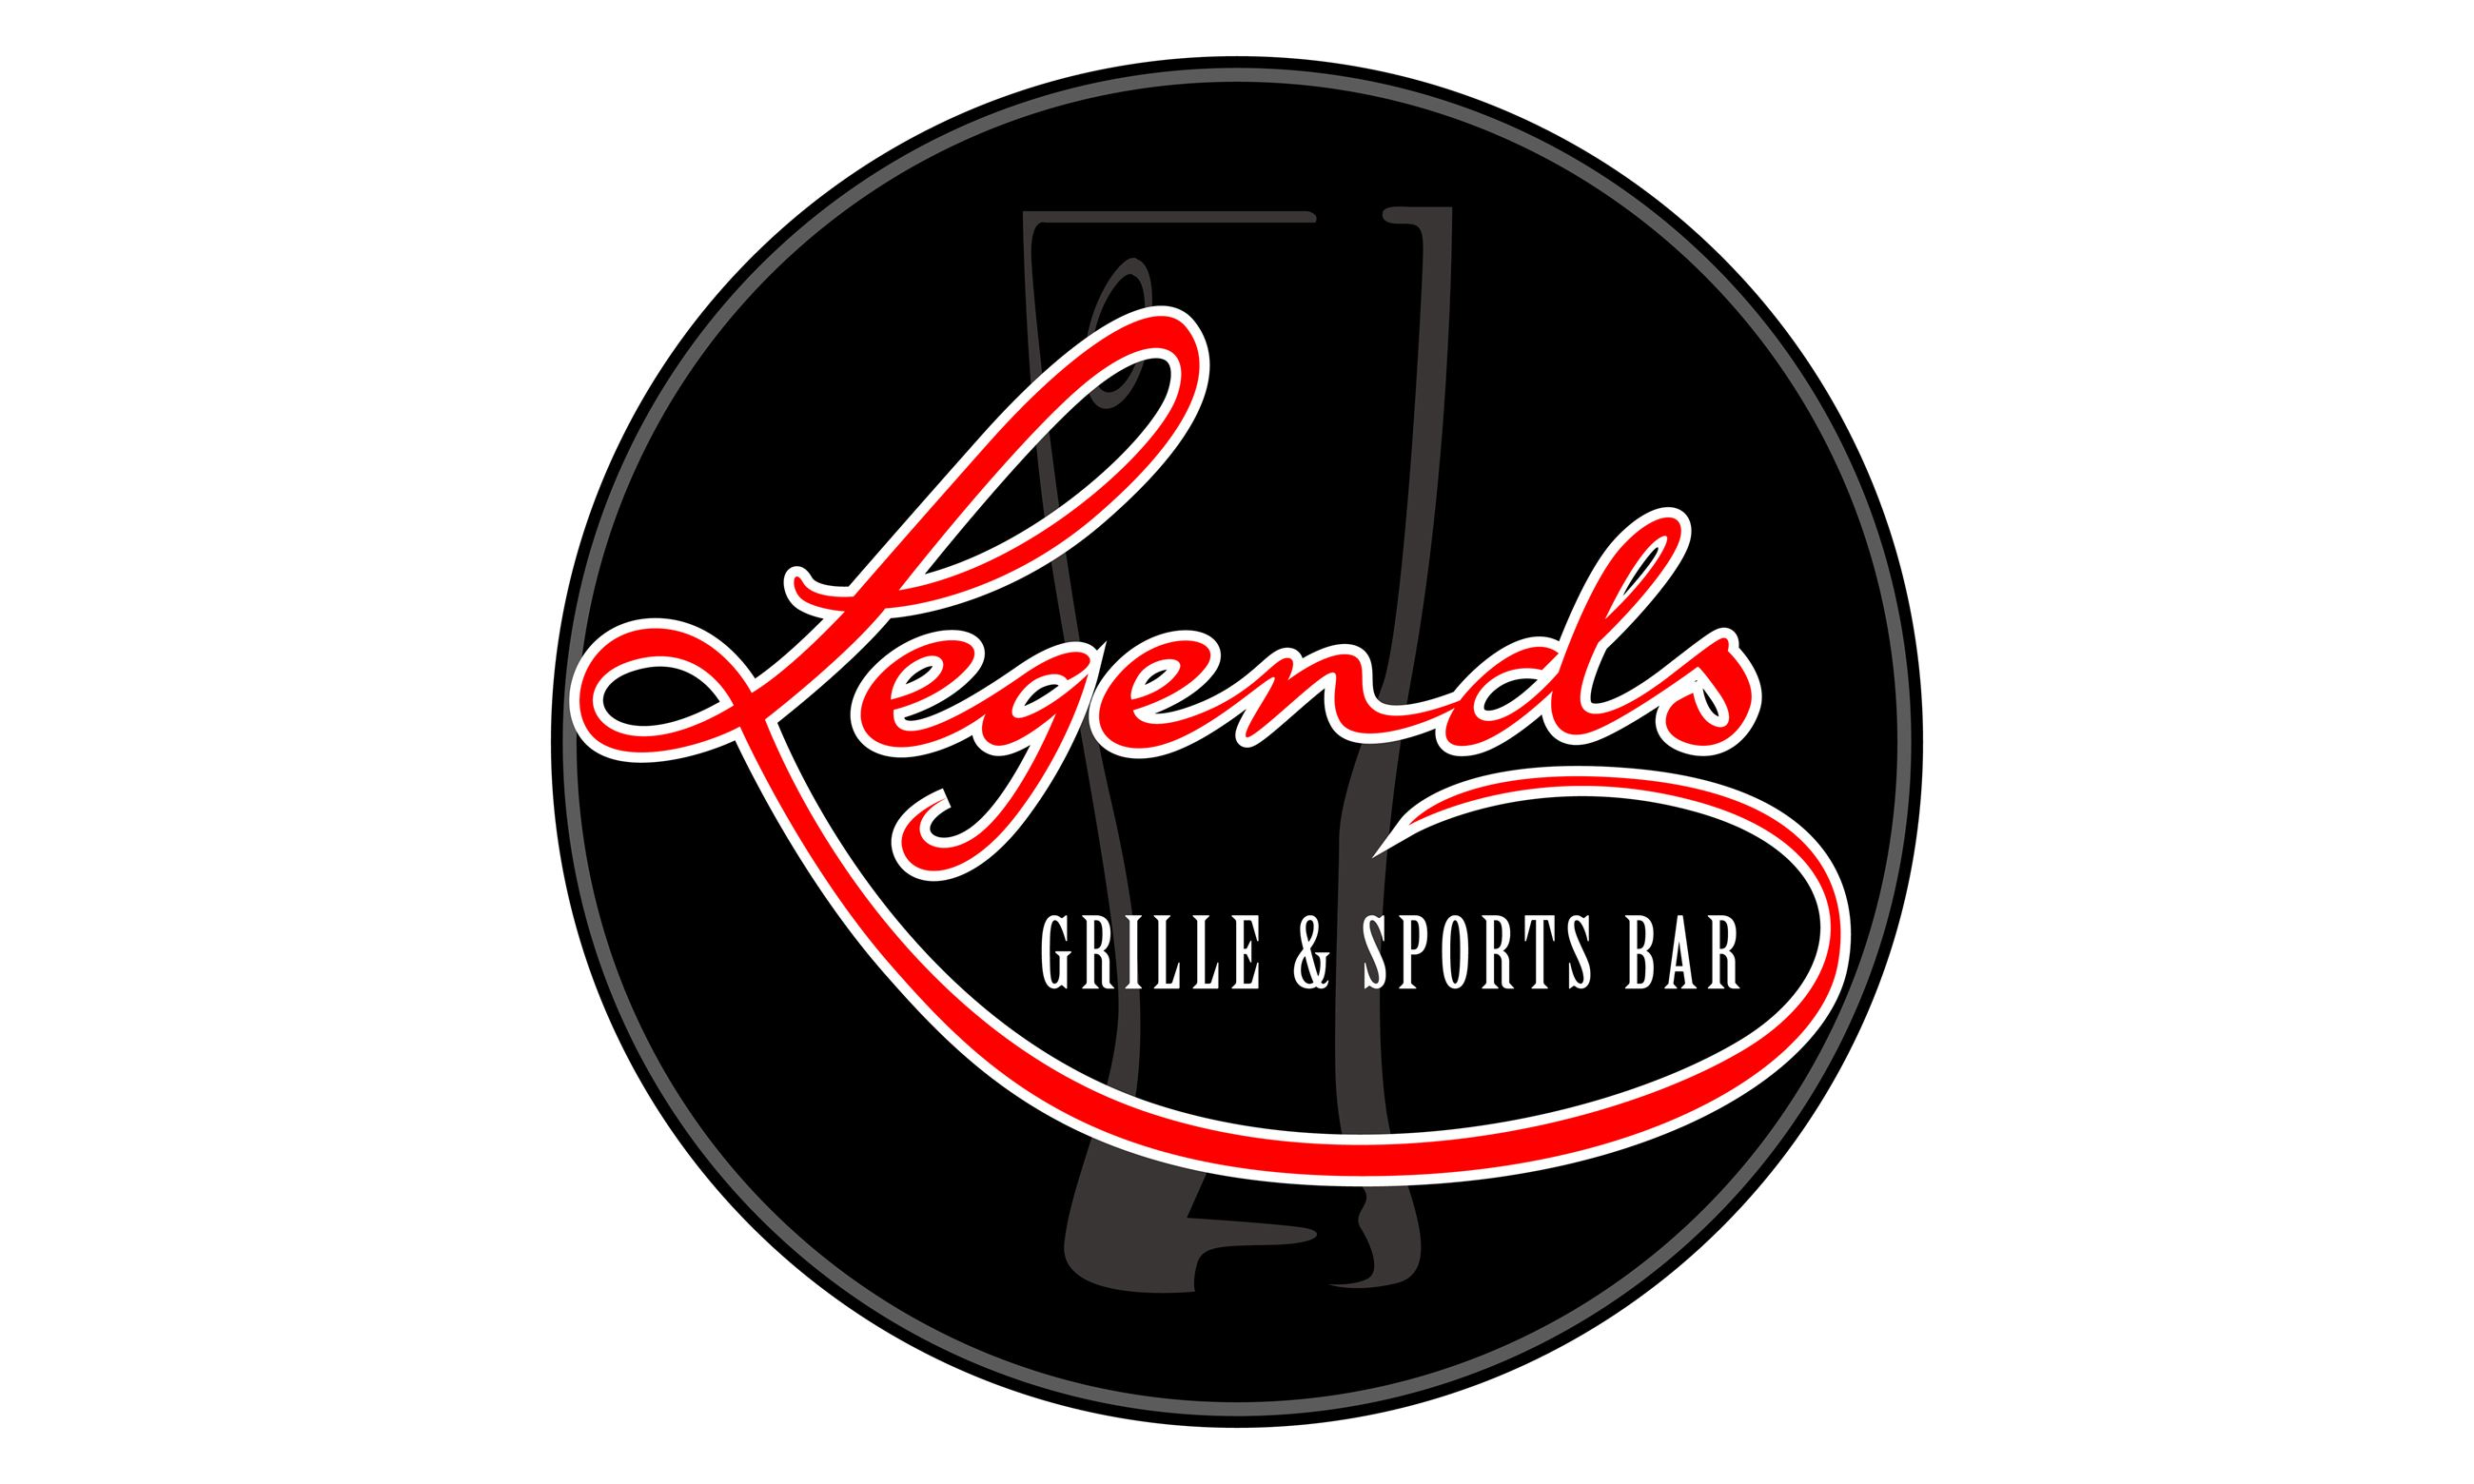 Legends Grille & Sports Bar logo